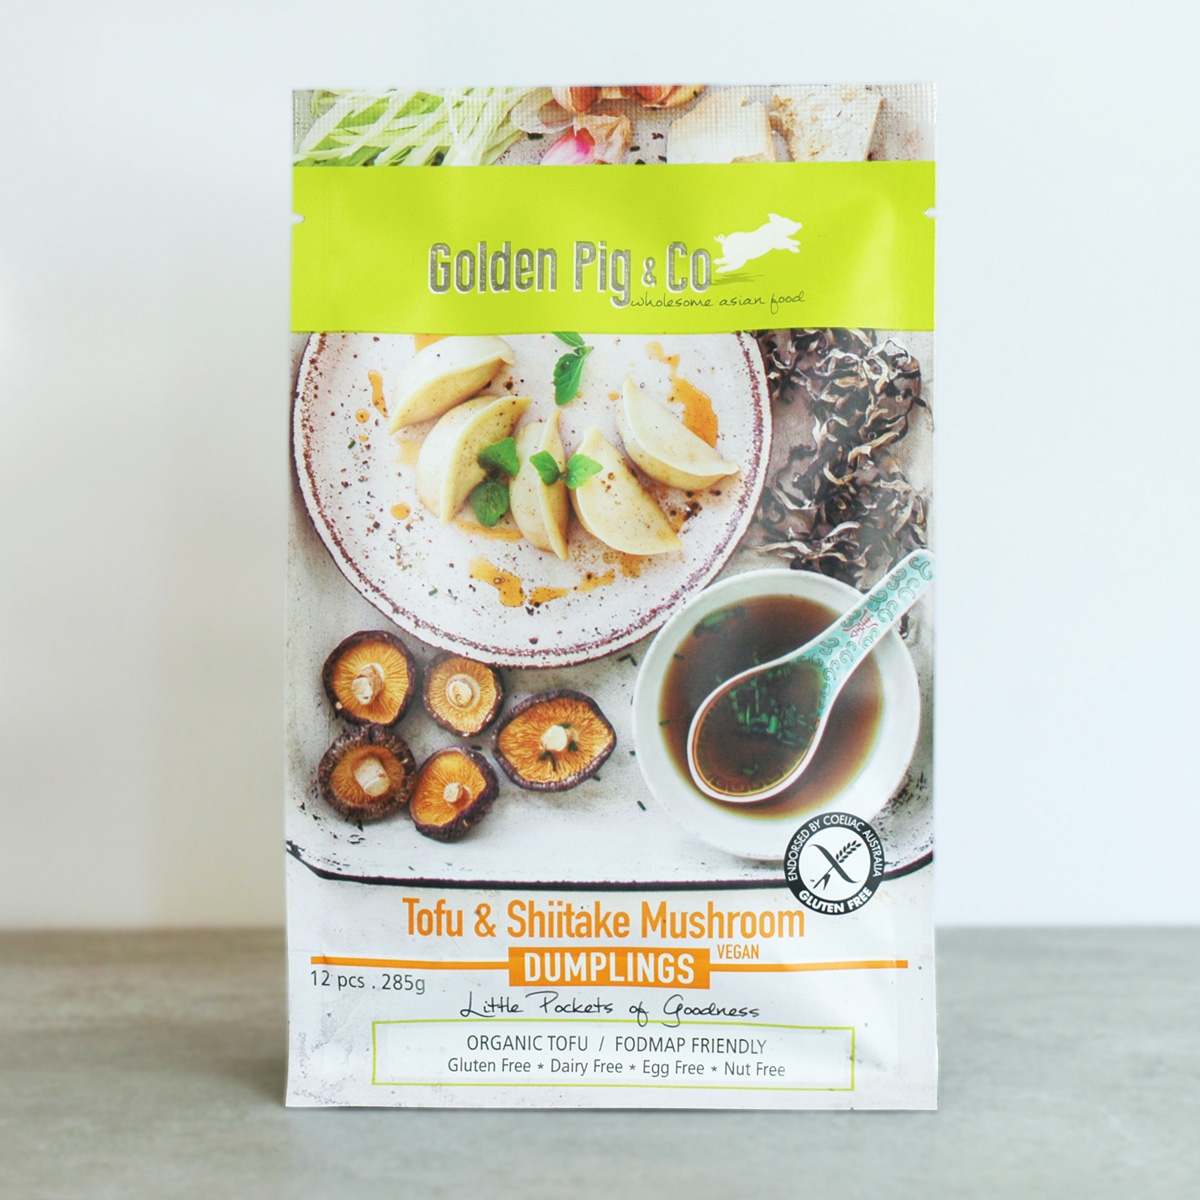 TOFU & SHIITAKE MUSHROOM - FODMAP friendly, these vegan parcels of goodness marry organic tofu and cloud ear fungus with the sweetness of corn.Allergen Advice: contains soy from organic tofu and gluten free soy sauce.Gluten-Free, Wheat-Free, Dairy-Free, Egg-Free, Nut-Free, Sugar-Free, Yeast-Free, MSG-free, Preservatives-Free and GMO-Free.